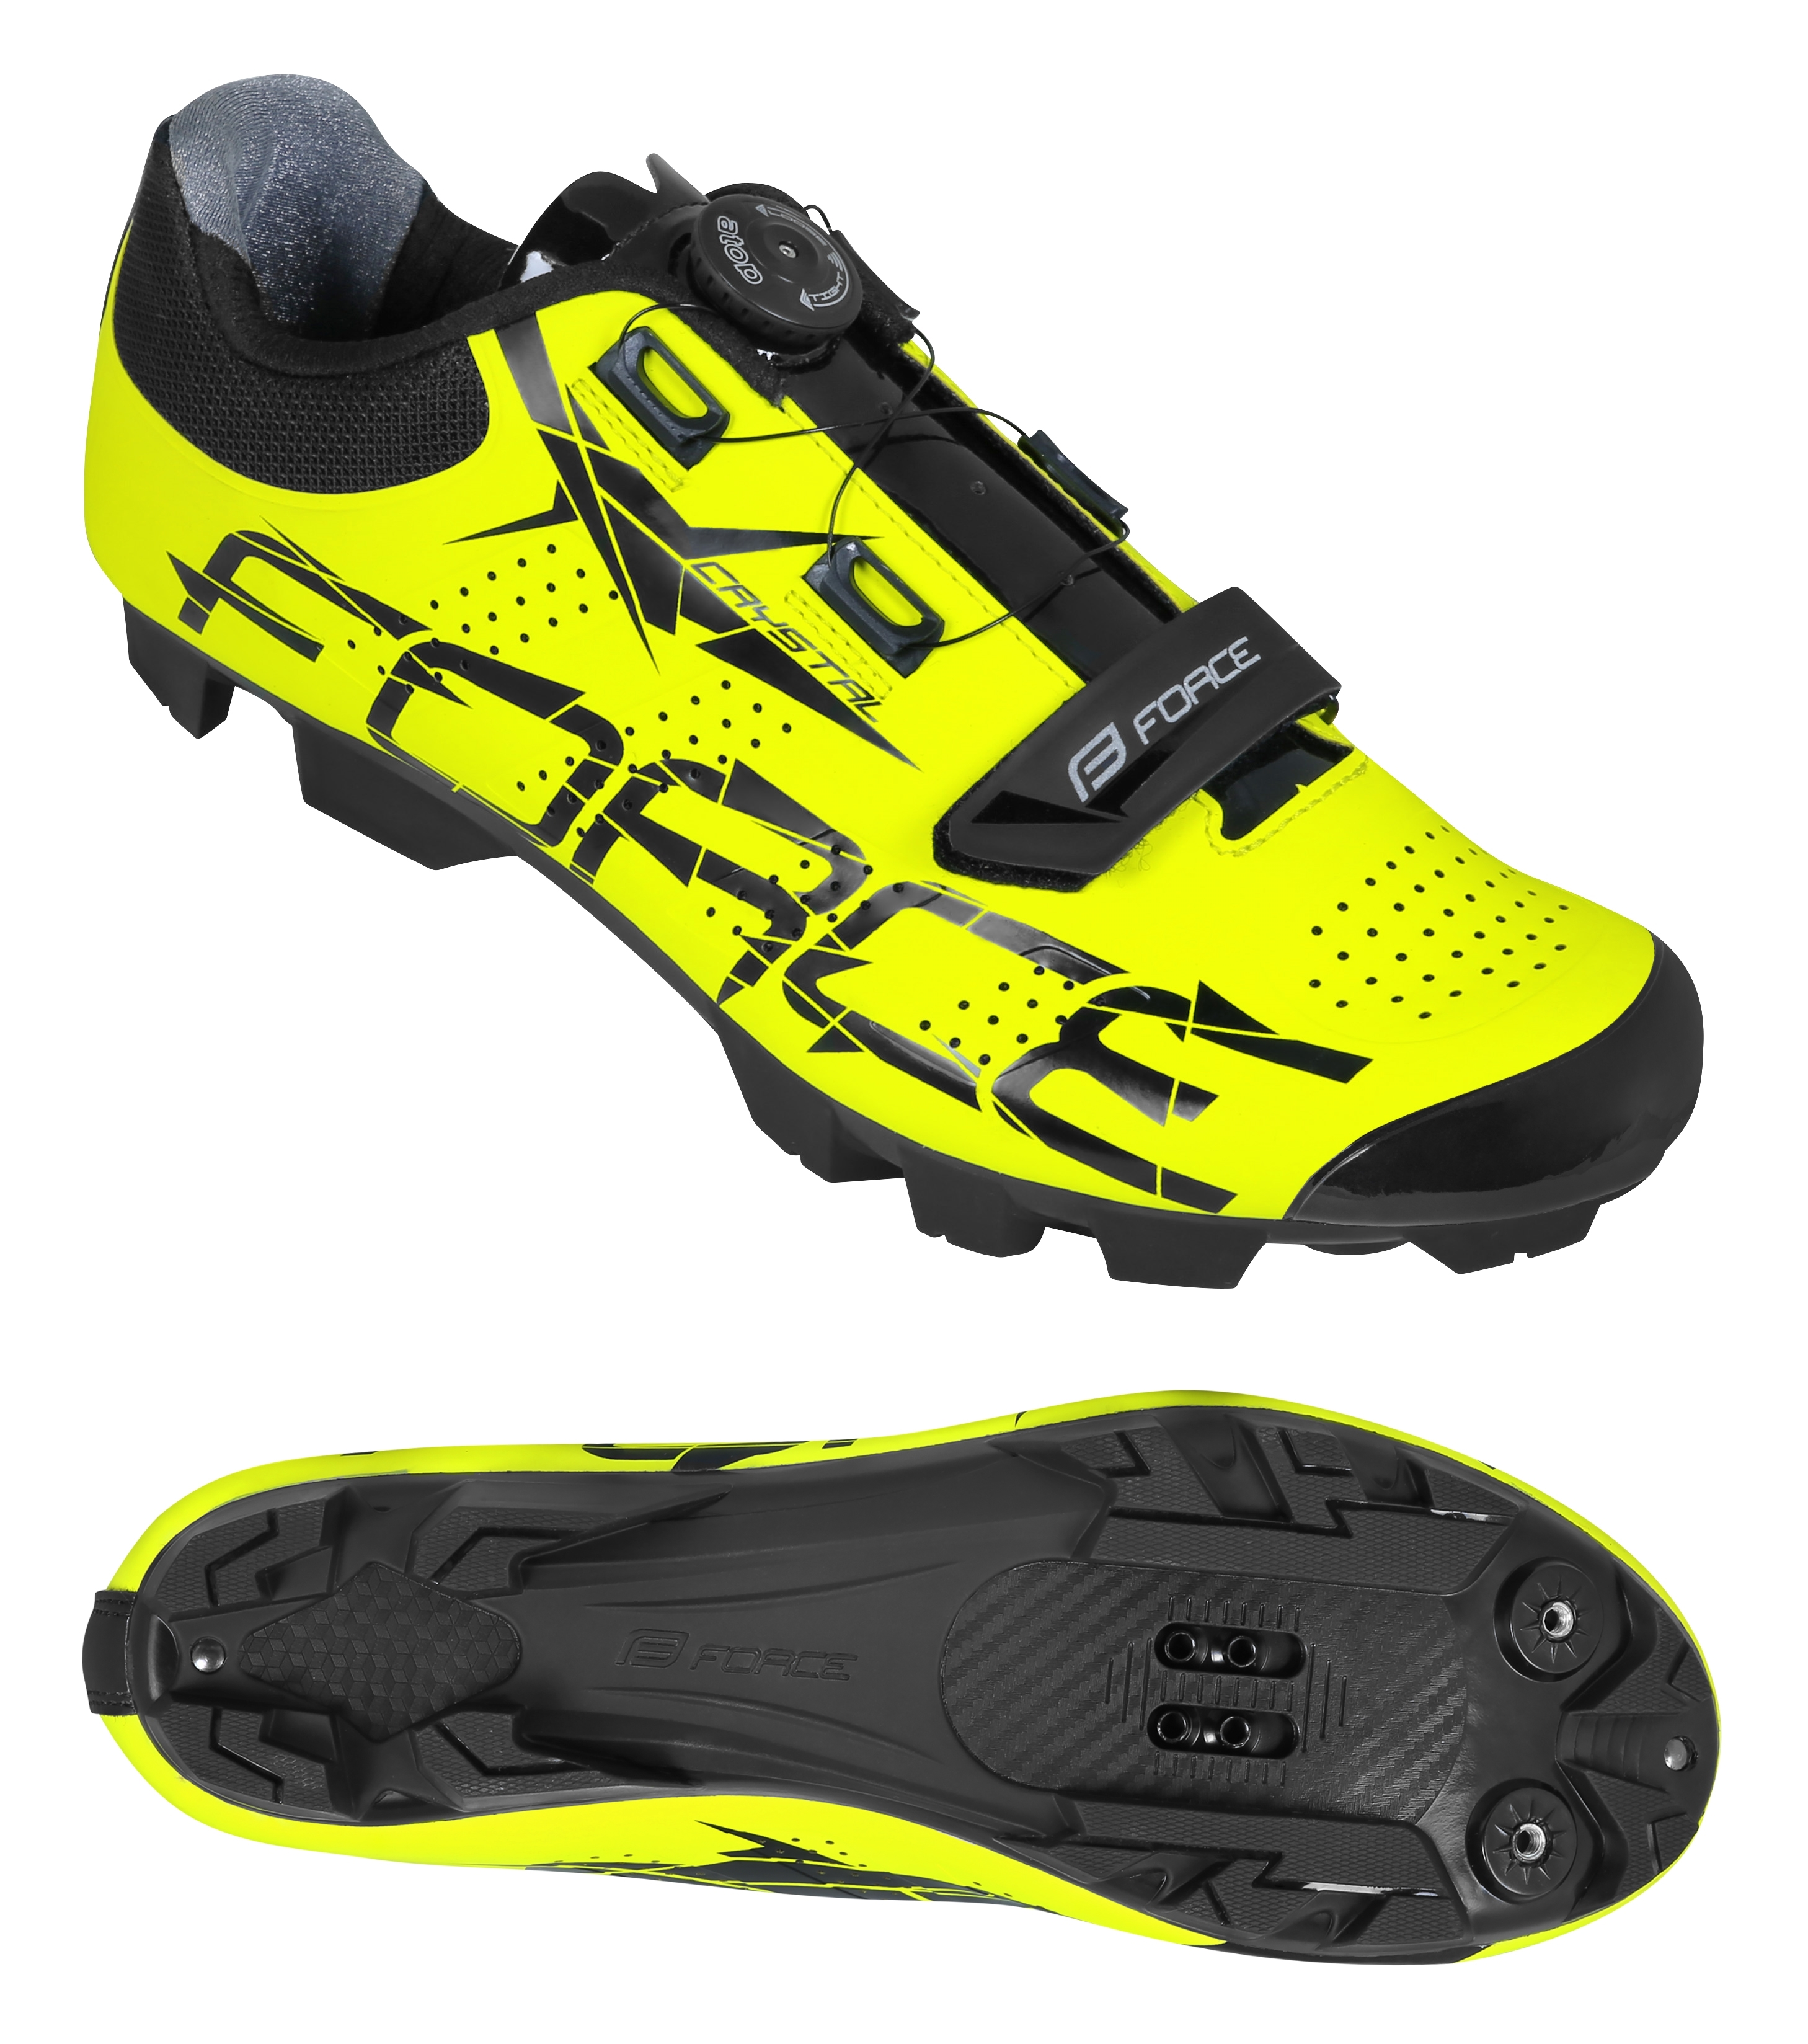 Tretry FORCE MTB CRYSTAL vel. 39, fluo